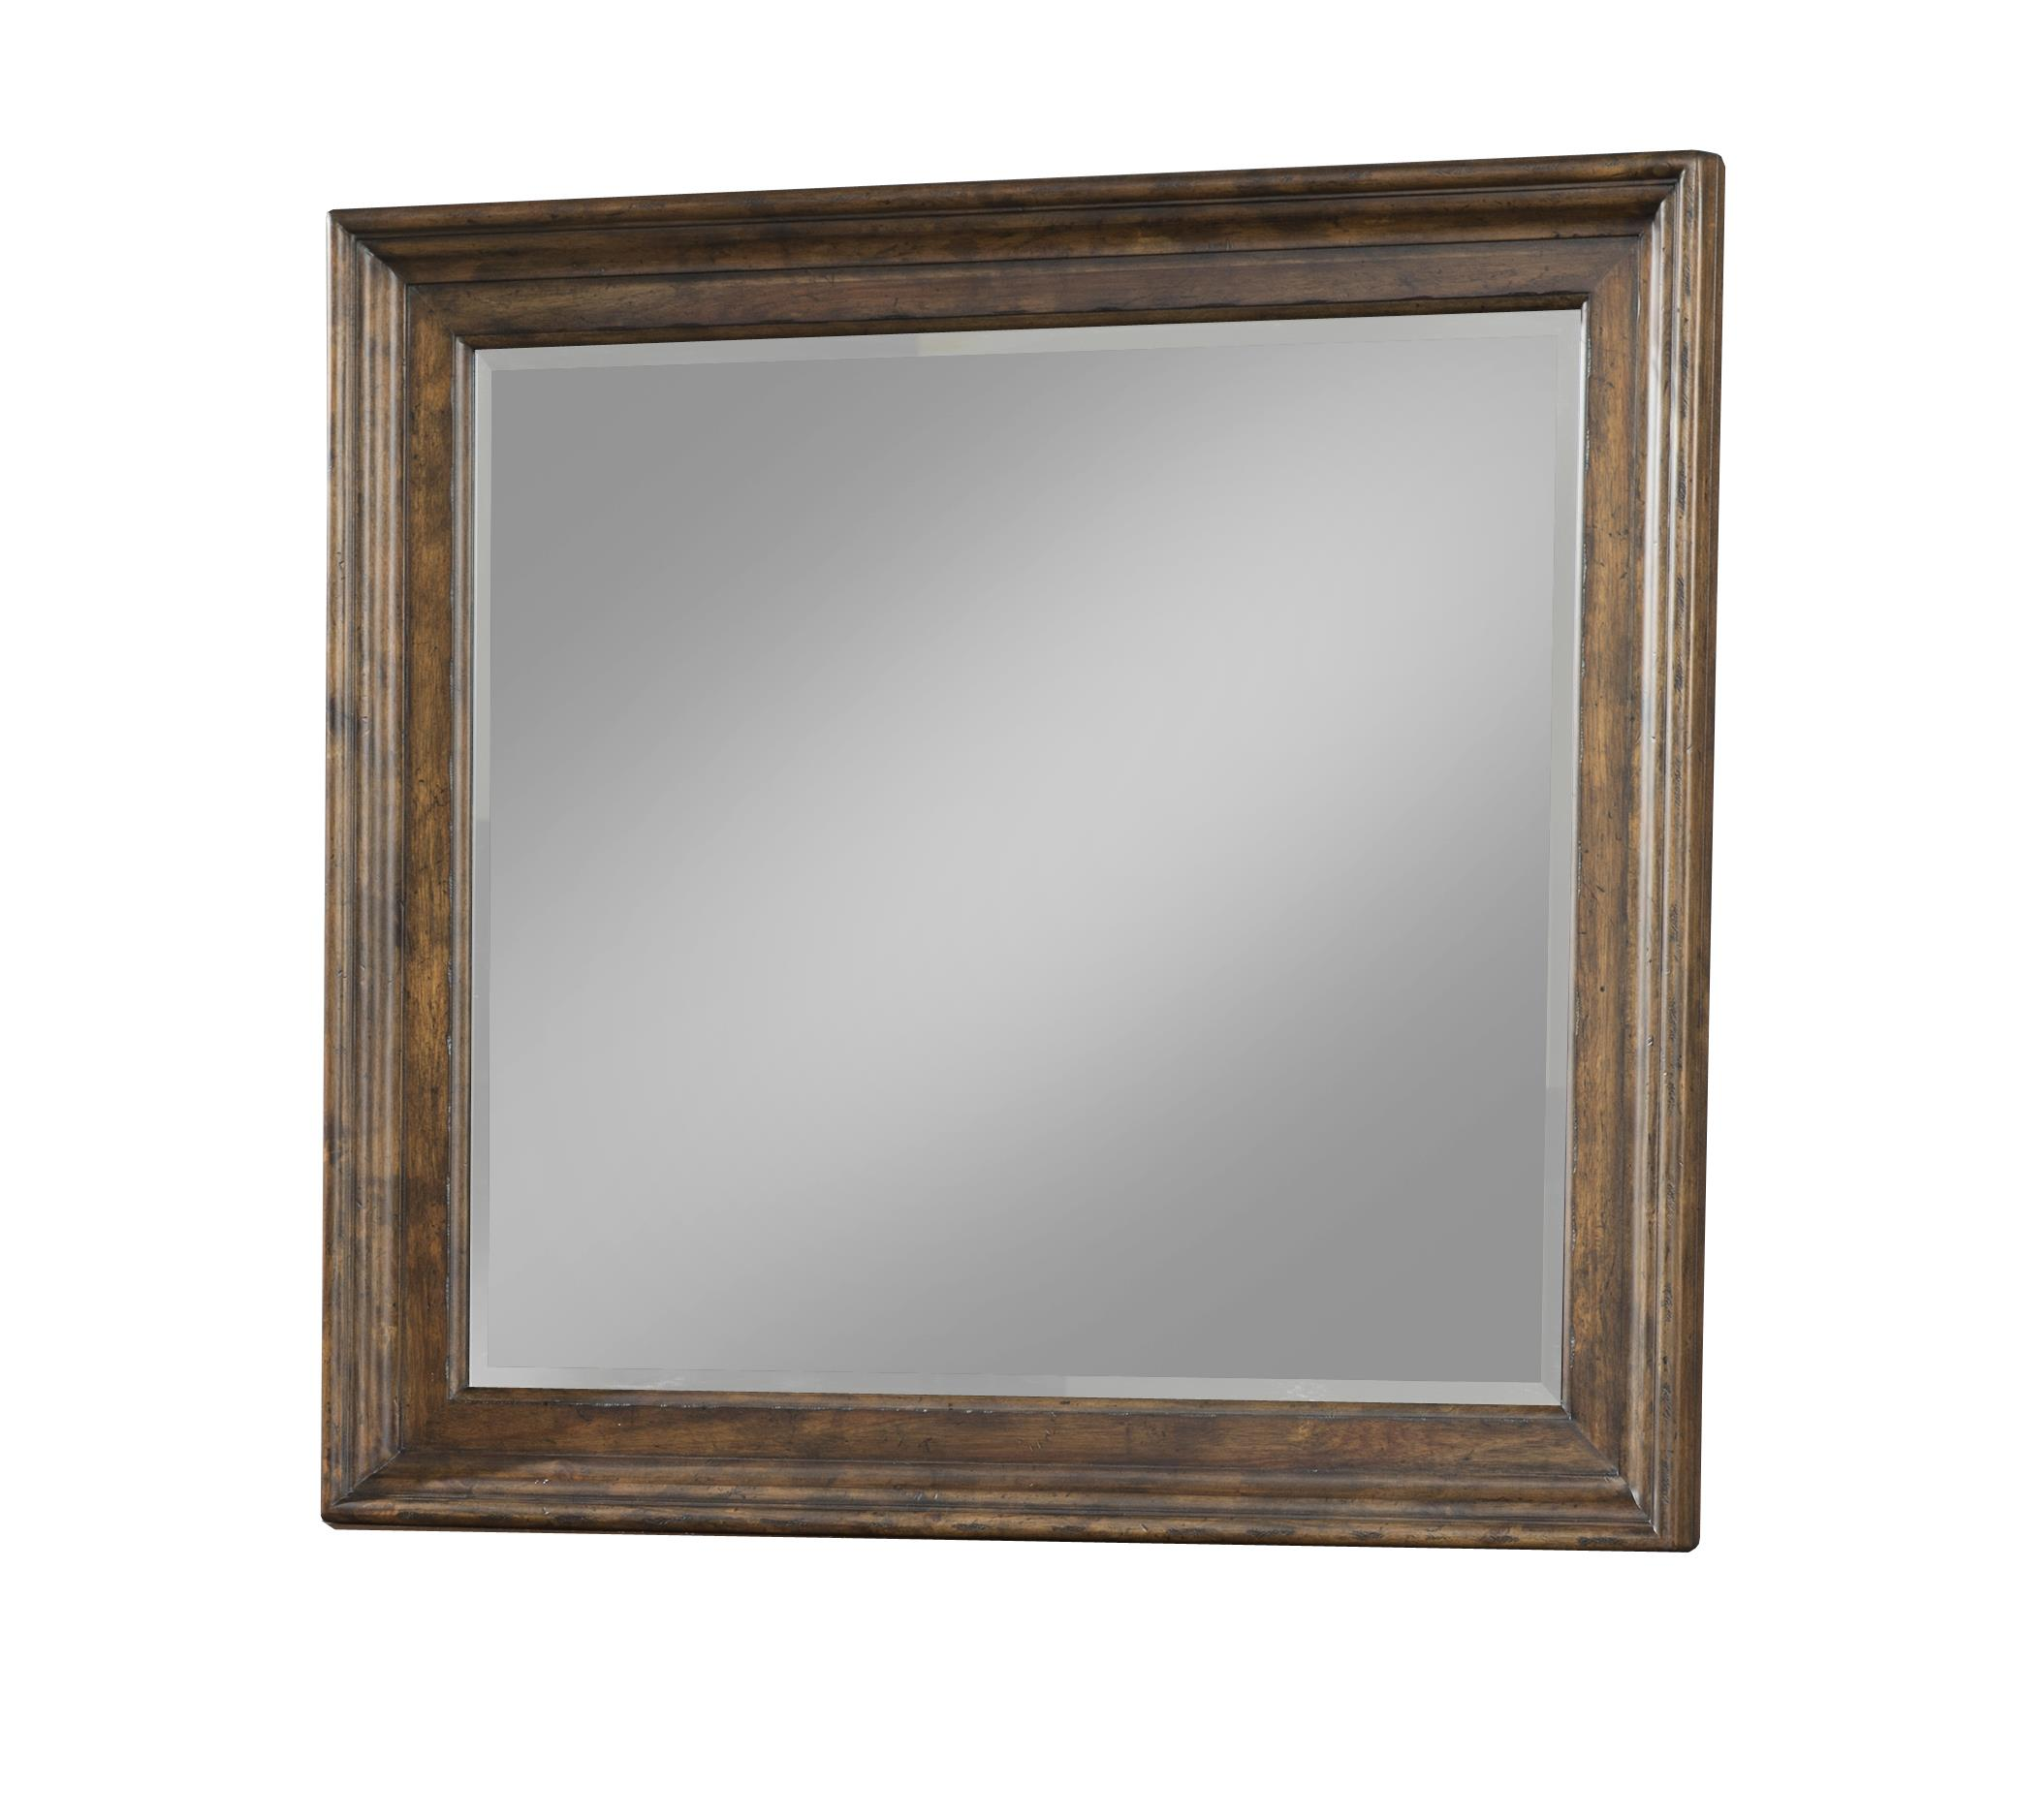 Trisha Yearwood Home Collection by Klaussner Trisha Yearwood Home Mirror Mirror Landscape Mirror - Item Number: 920-660 MIRR